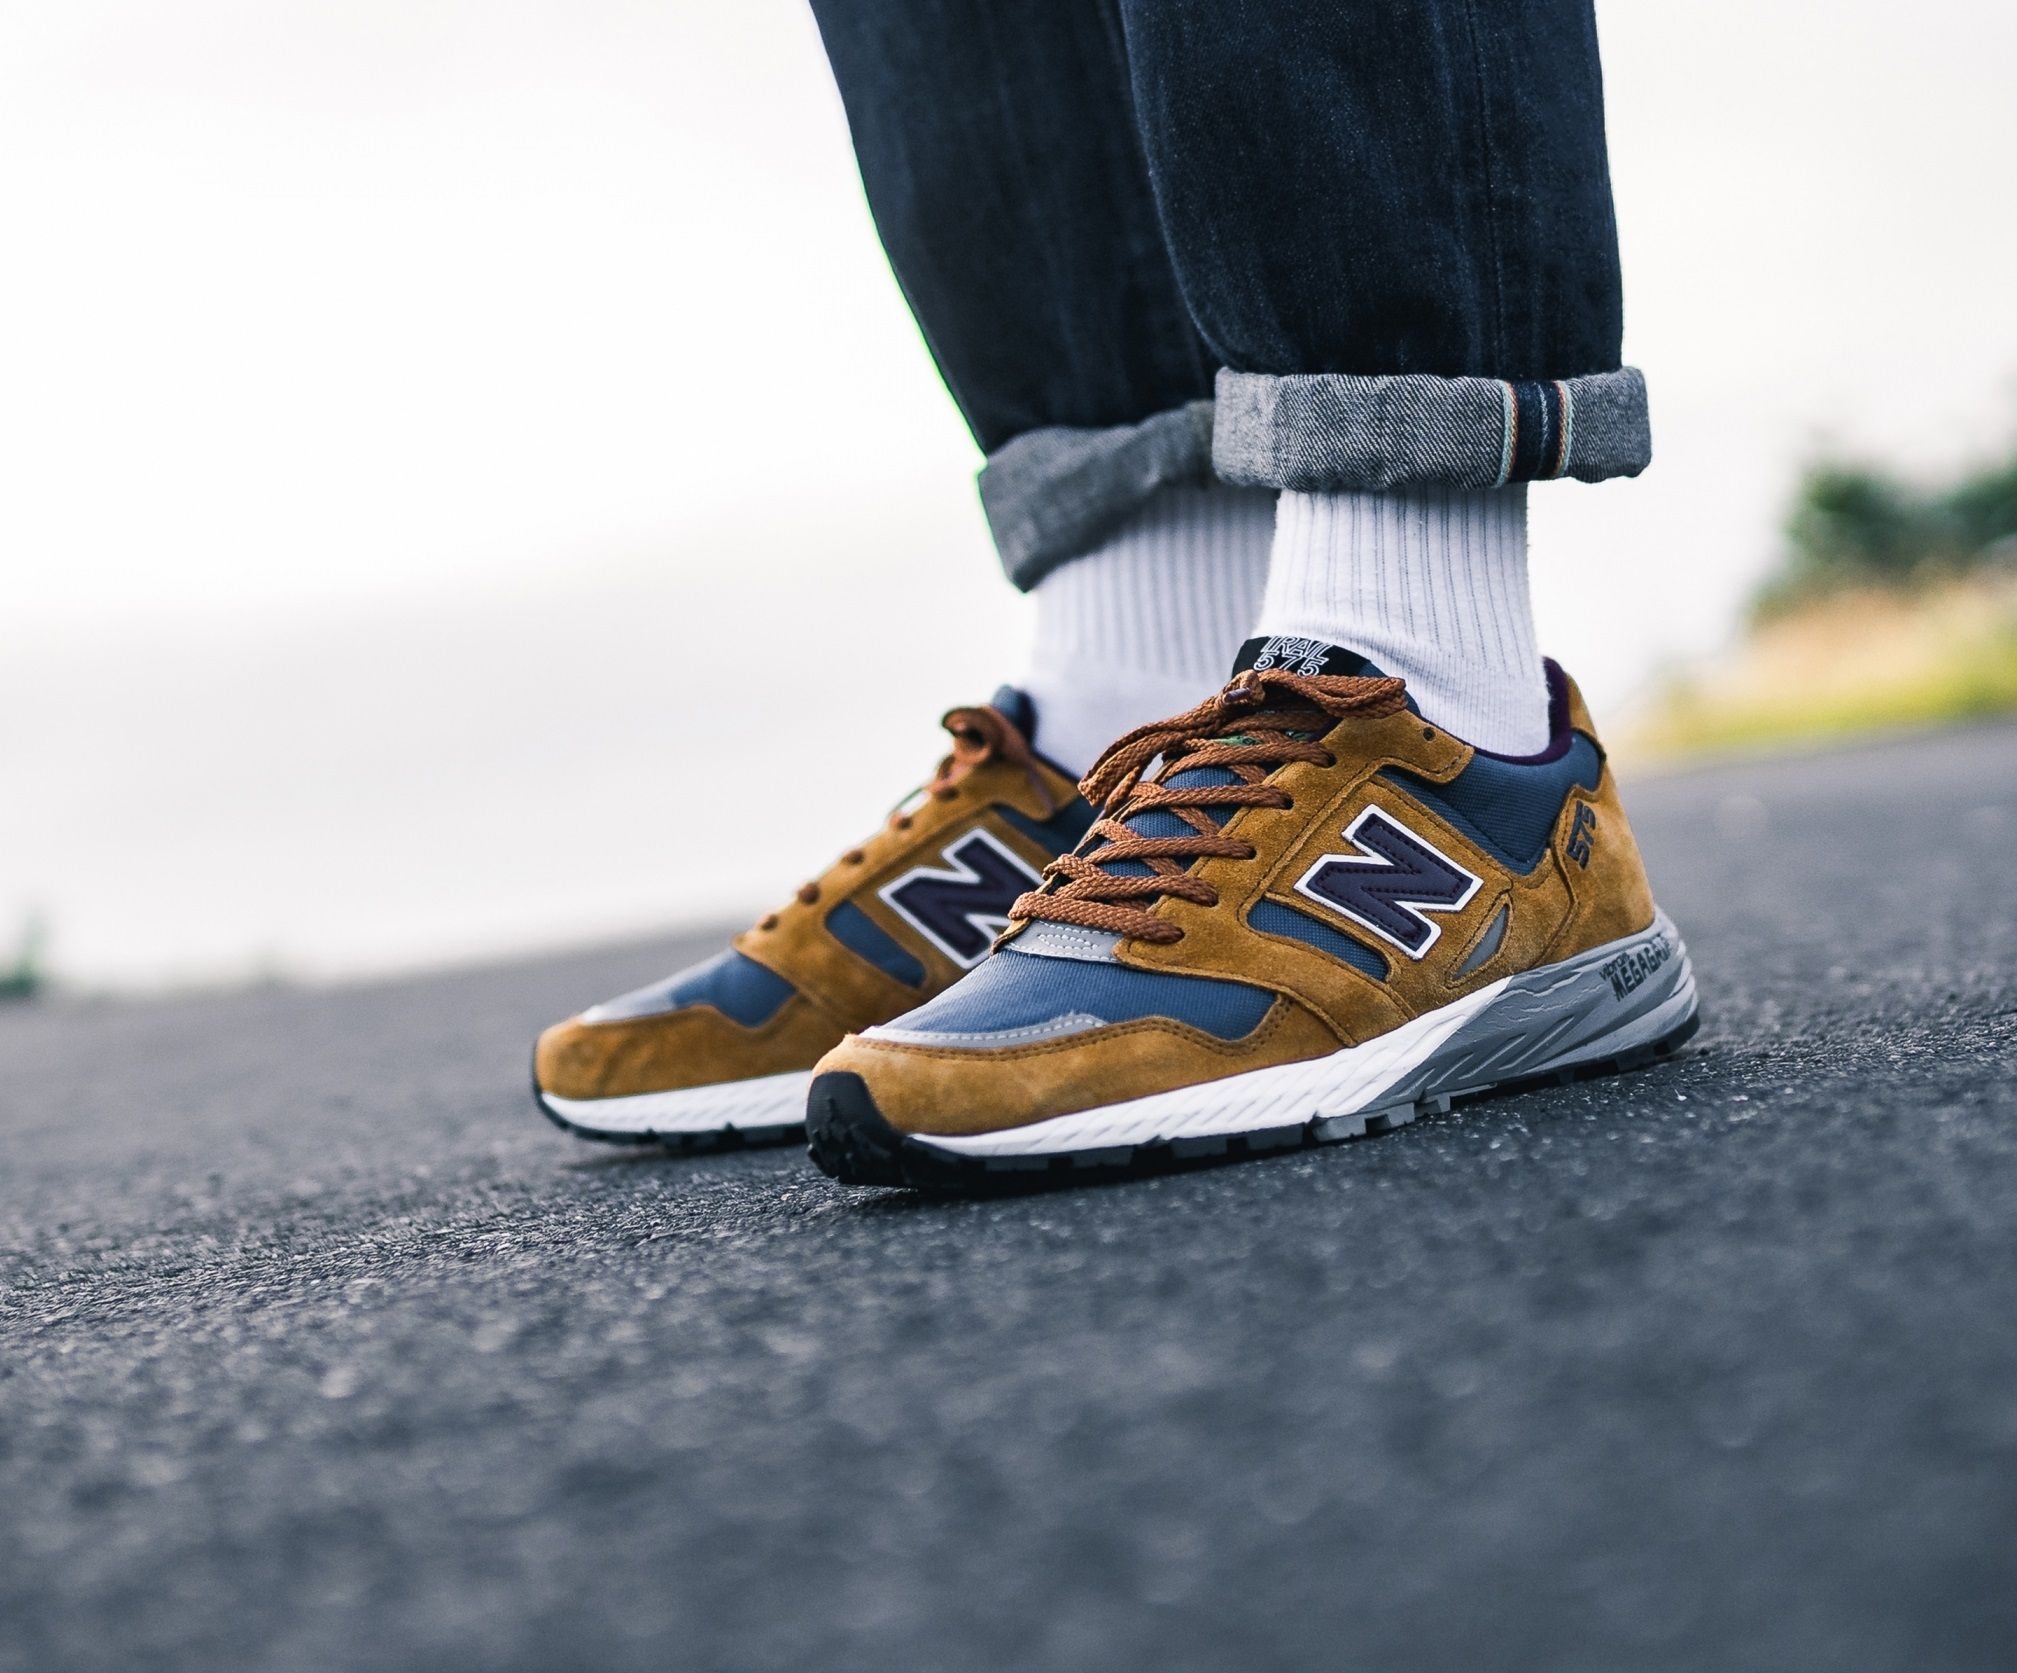 New Balance 575 Trail in 2020 | New